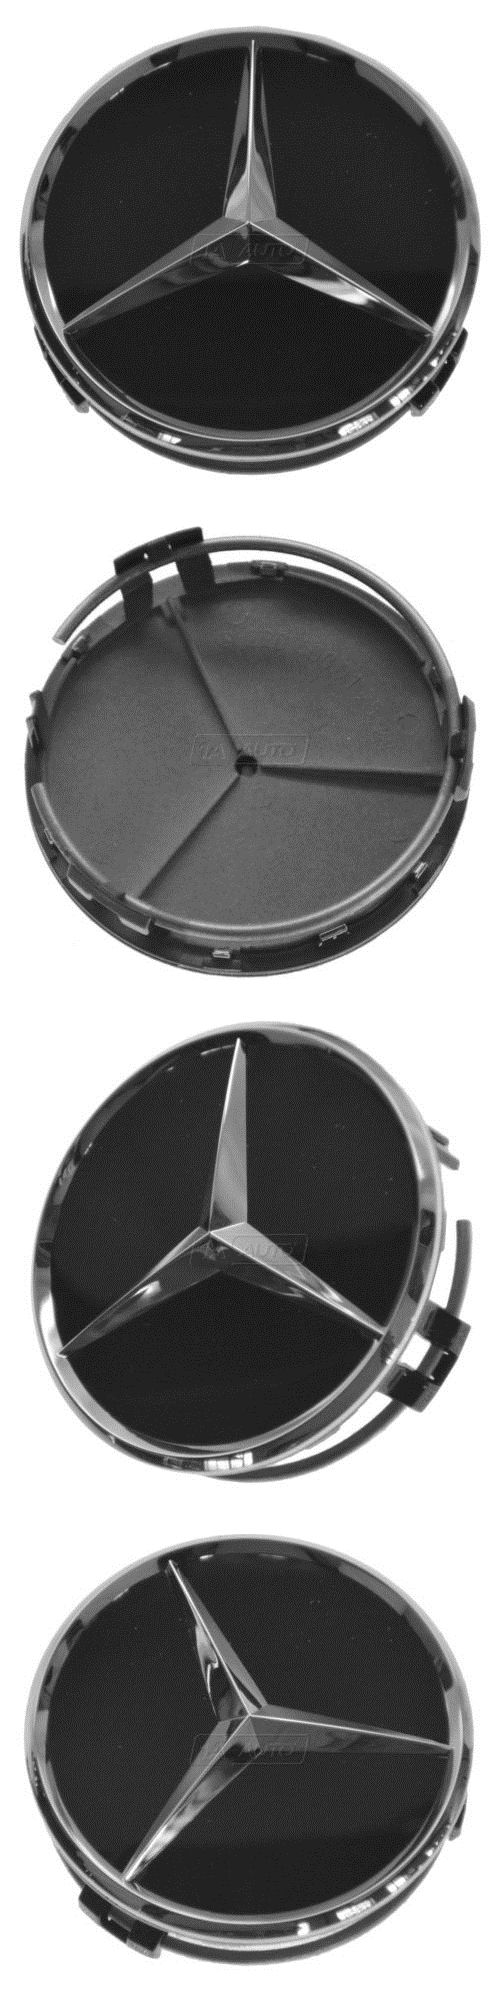 auto parts - general: Oem Raised Chrome And Black Wheel Center Cap For Mercedes Benz New BUY IT NOW ONLY: $32.9